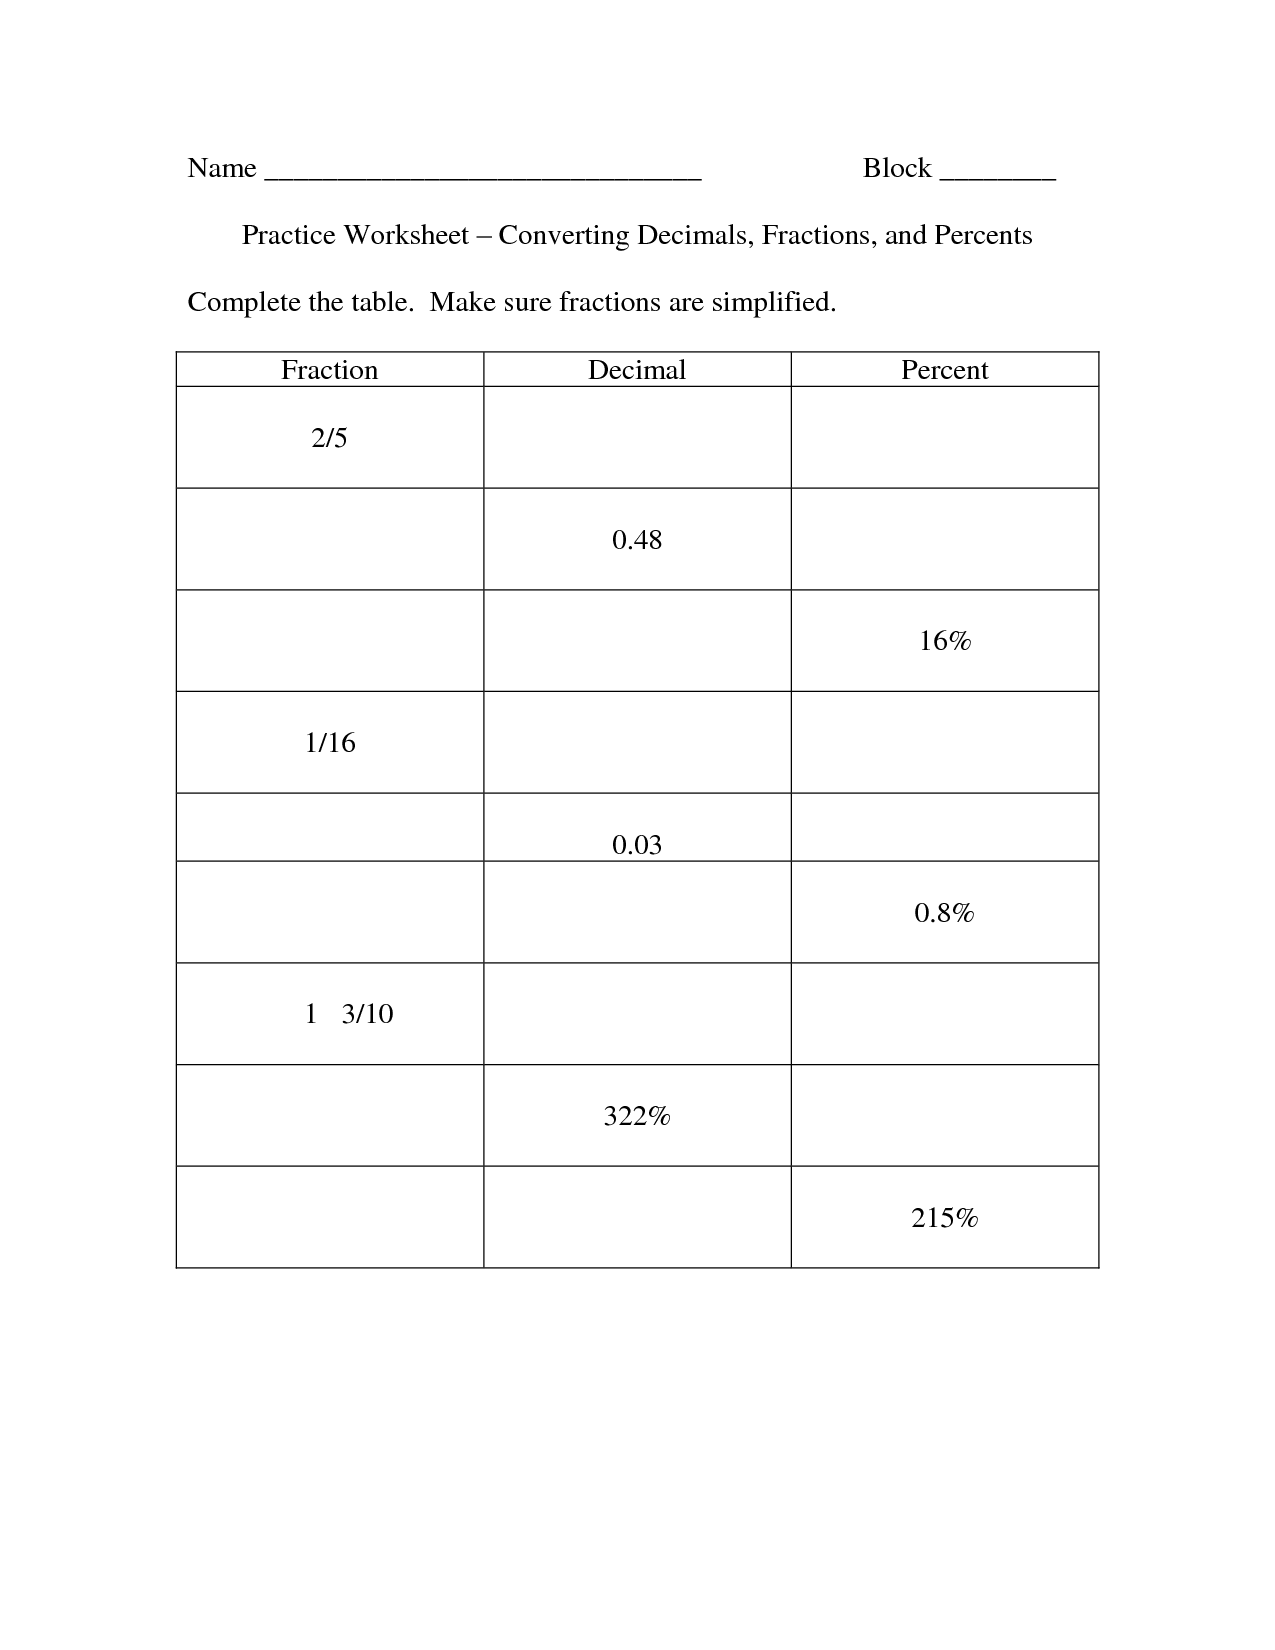 Printable Fraction Decimal Percent Chart